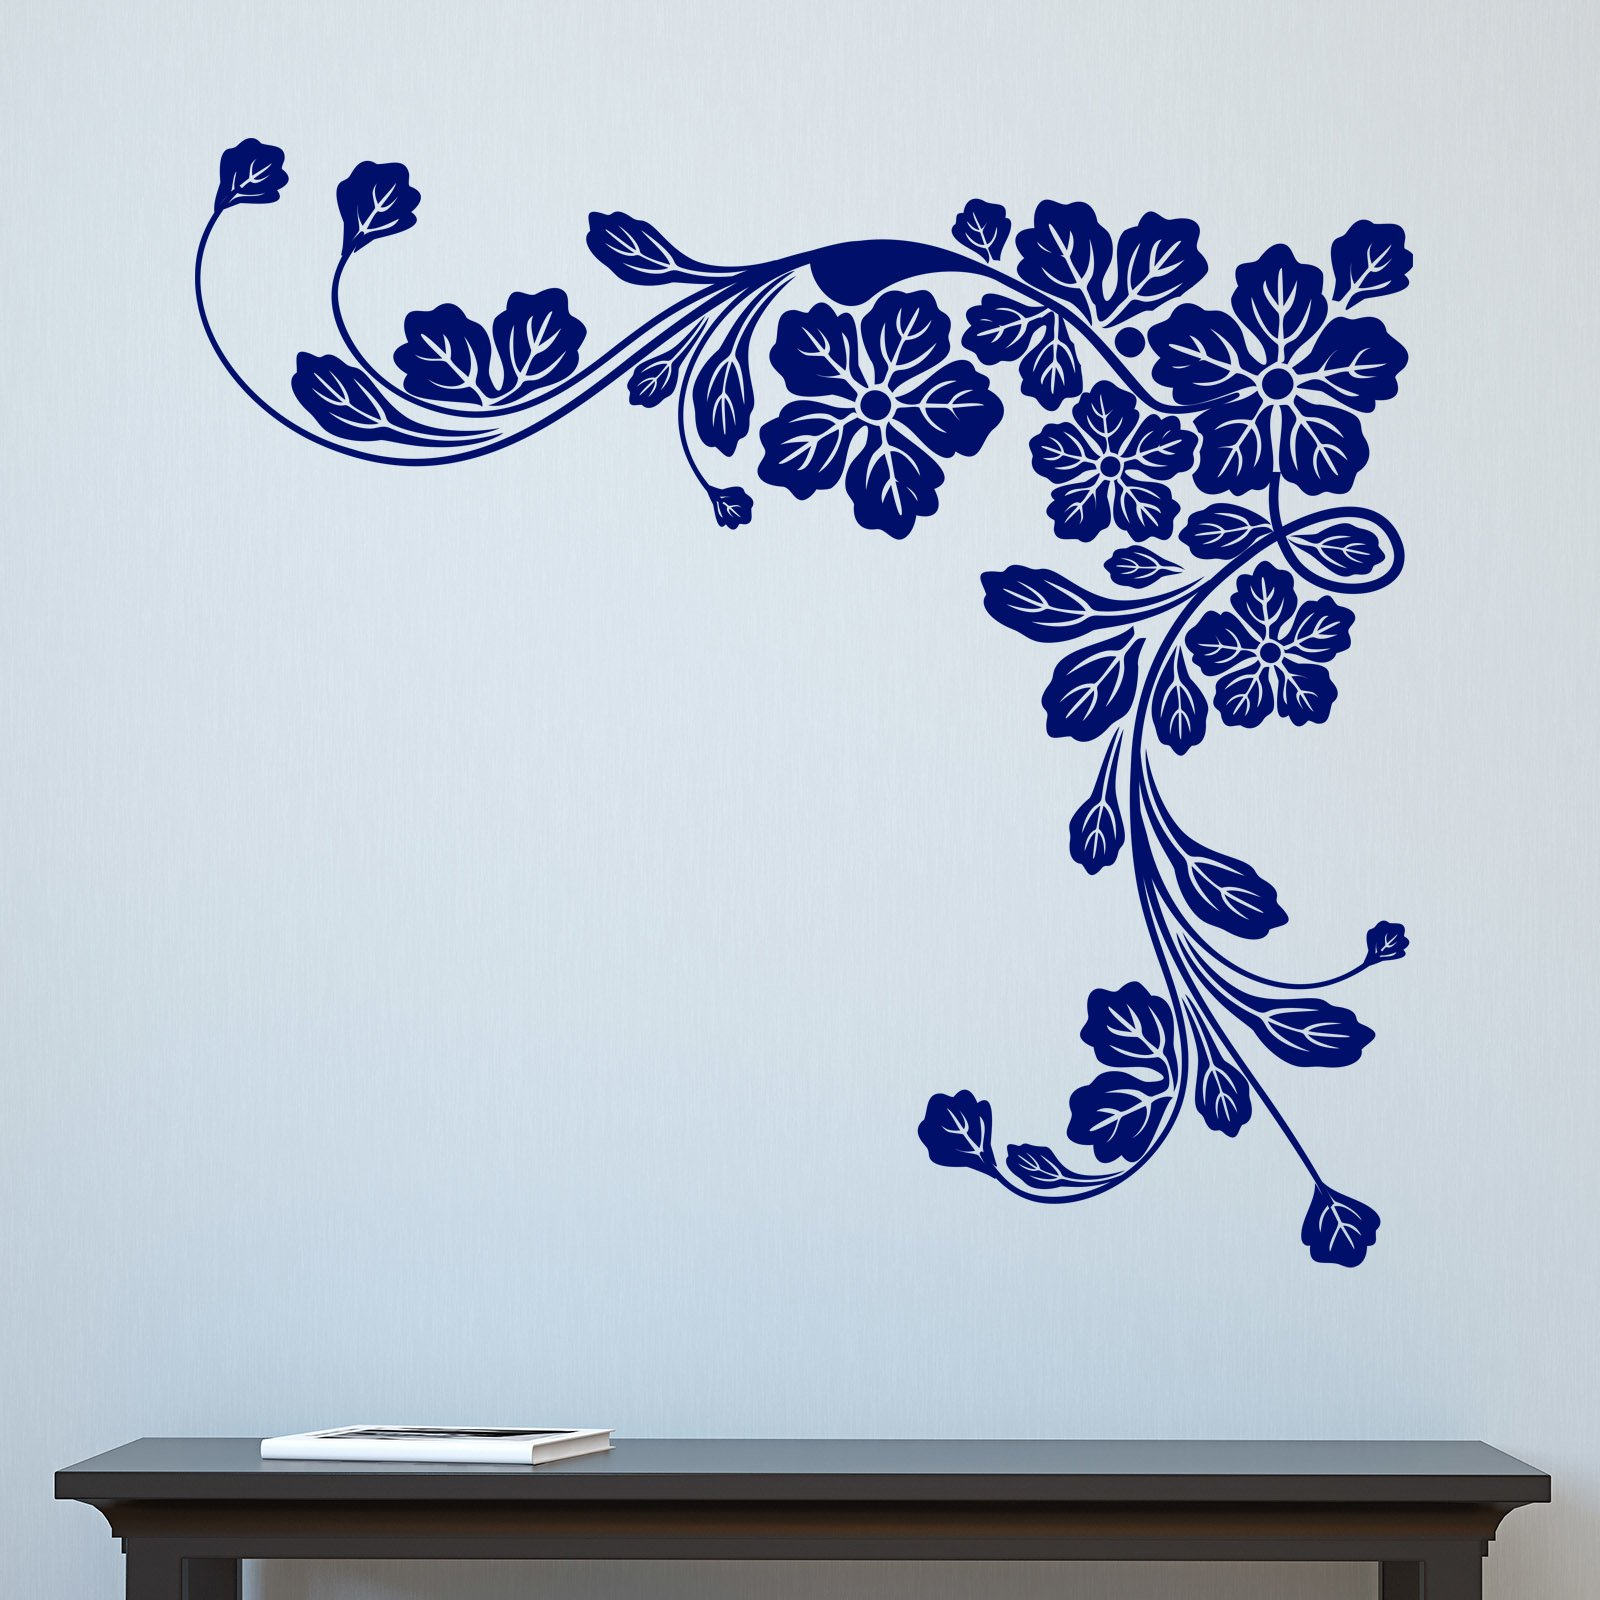 28 floral wall sticker unavailable listing on etsy wall floral wall sticker floral corner leaves wall sticker world of wall stickers